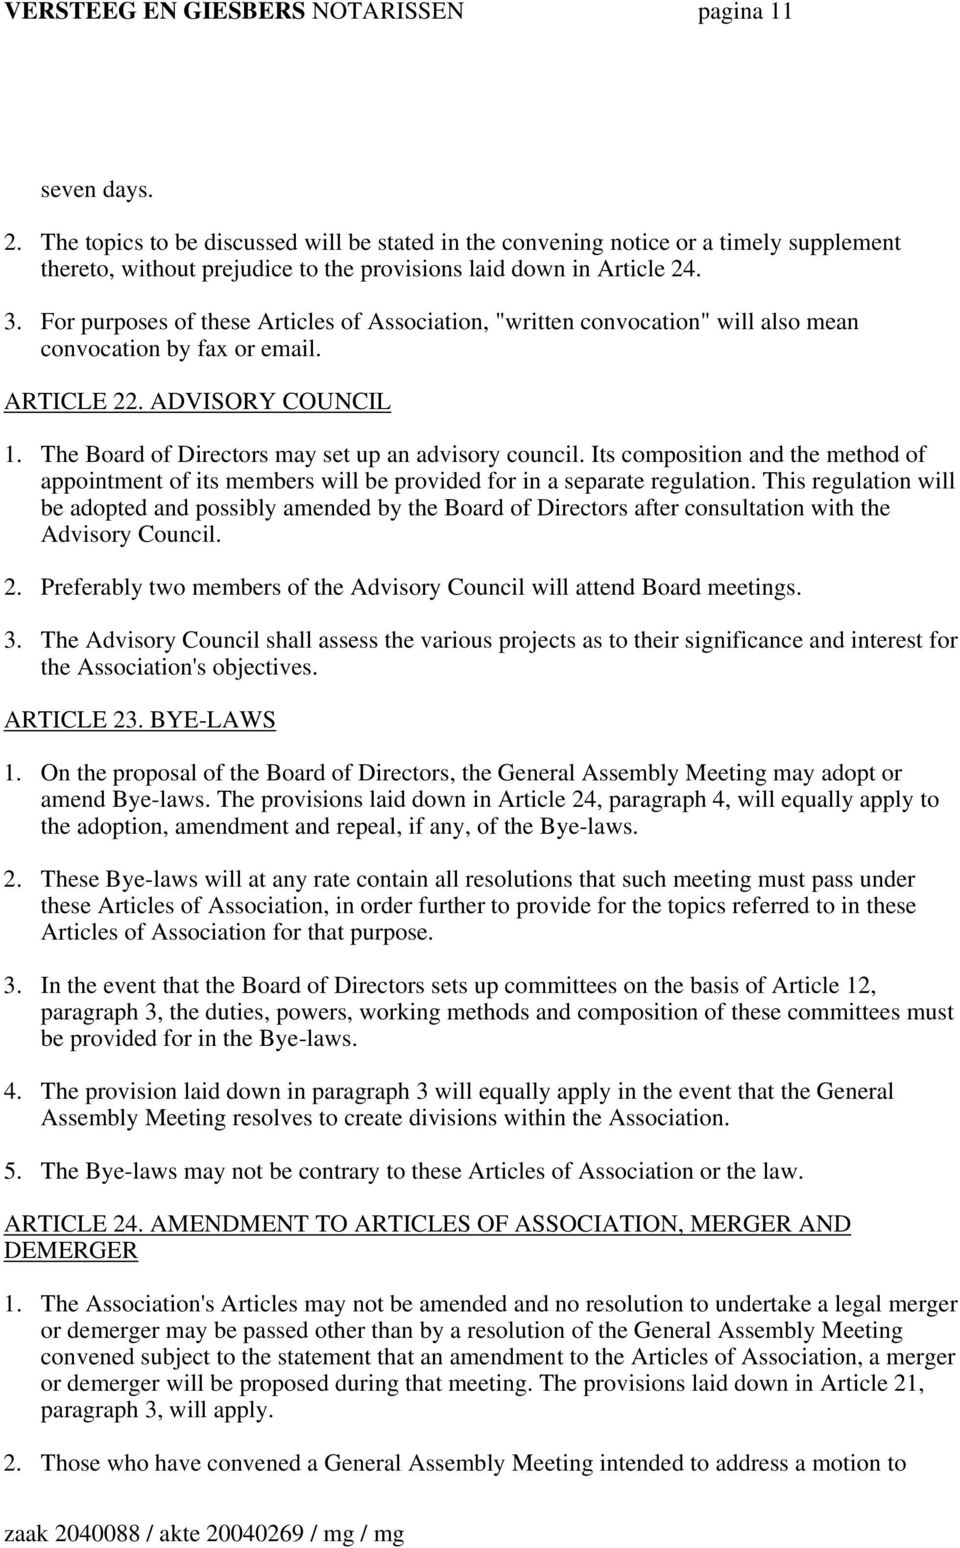 "For purposes of these Articles of Association, ""written convocation"" will also mean convocation by fax or email. ARTICLE 22. ADVISORY COUNCIL 1. The Board of Directors may set up an advisory council."